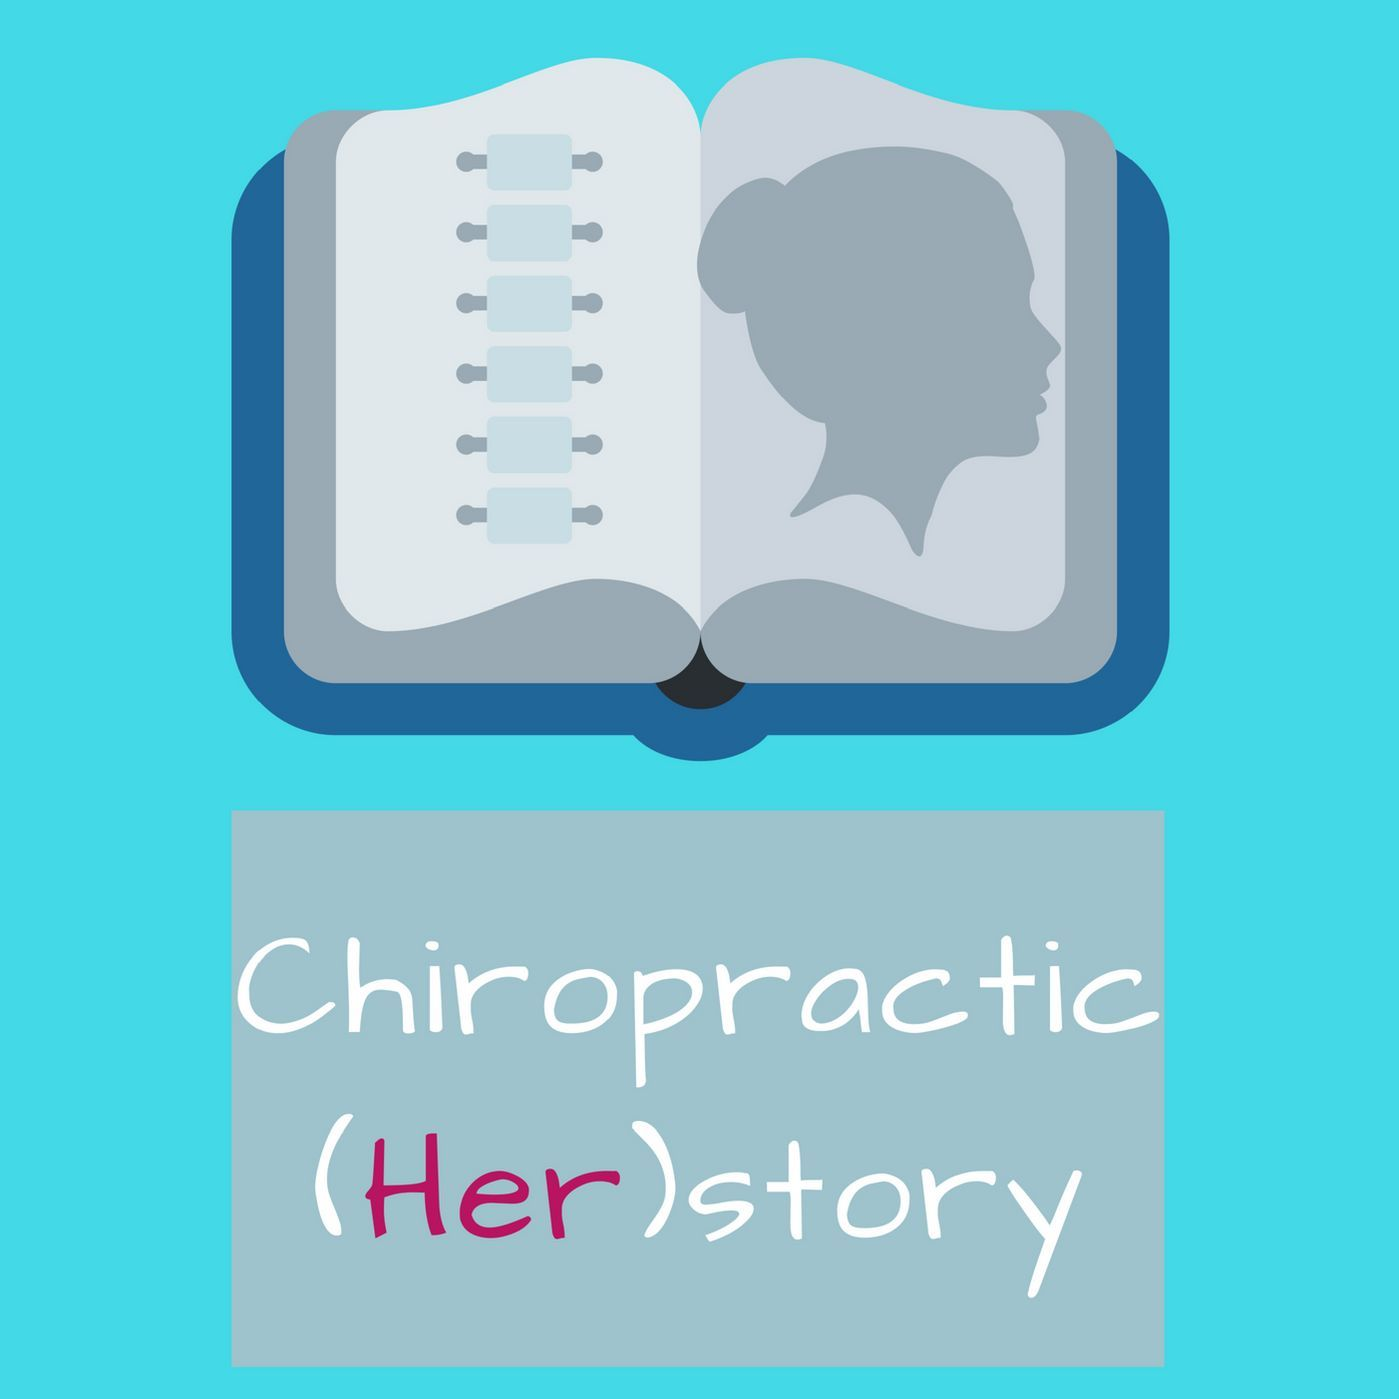 Dr. Haley Day Chiropractic (Her)story Episode 60